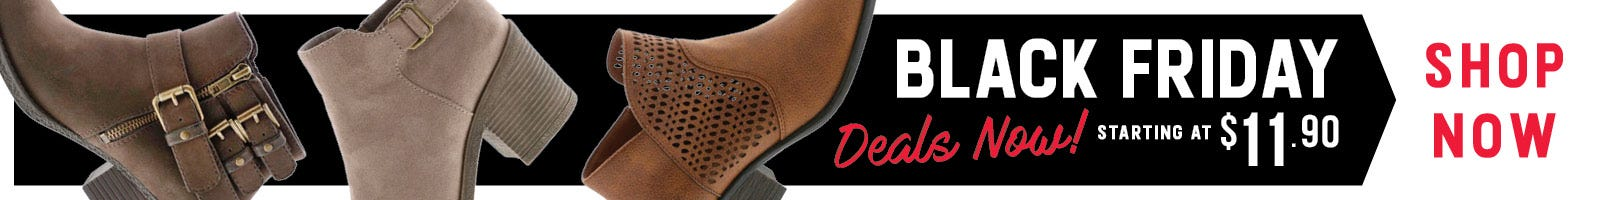 Shop Best Deals on Boots and Shoes